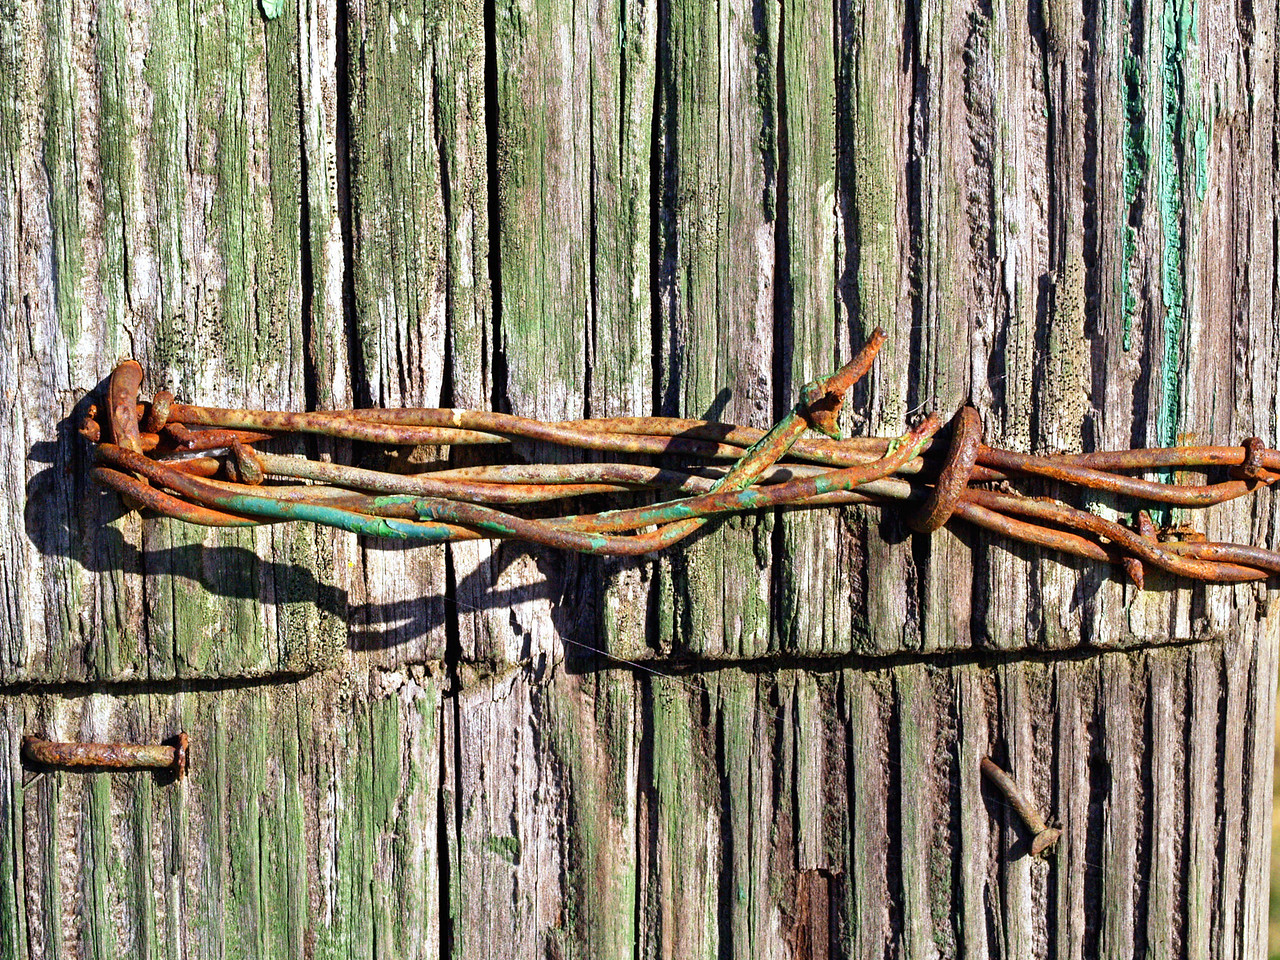 OLYMPUS DIGITAL CAMERA--Barb-wire steepled into a fence post.